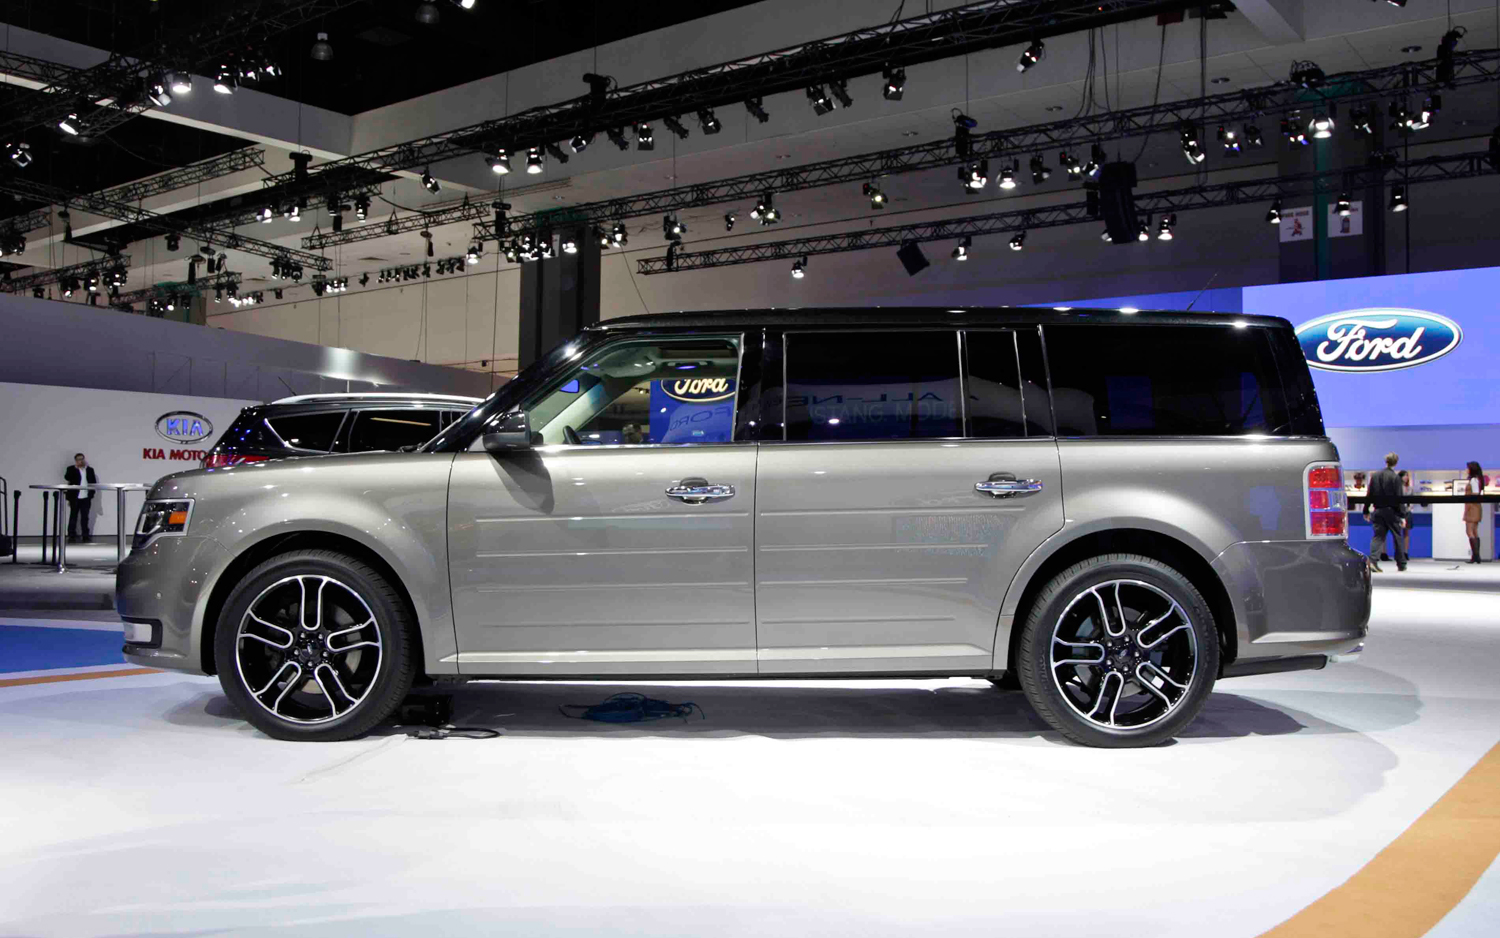 Ford Flex image #11